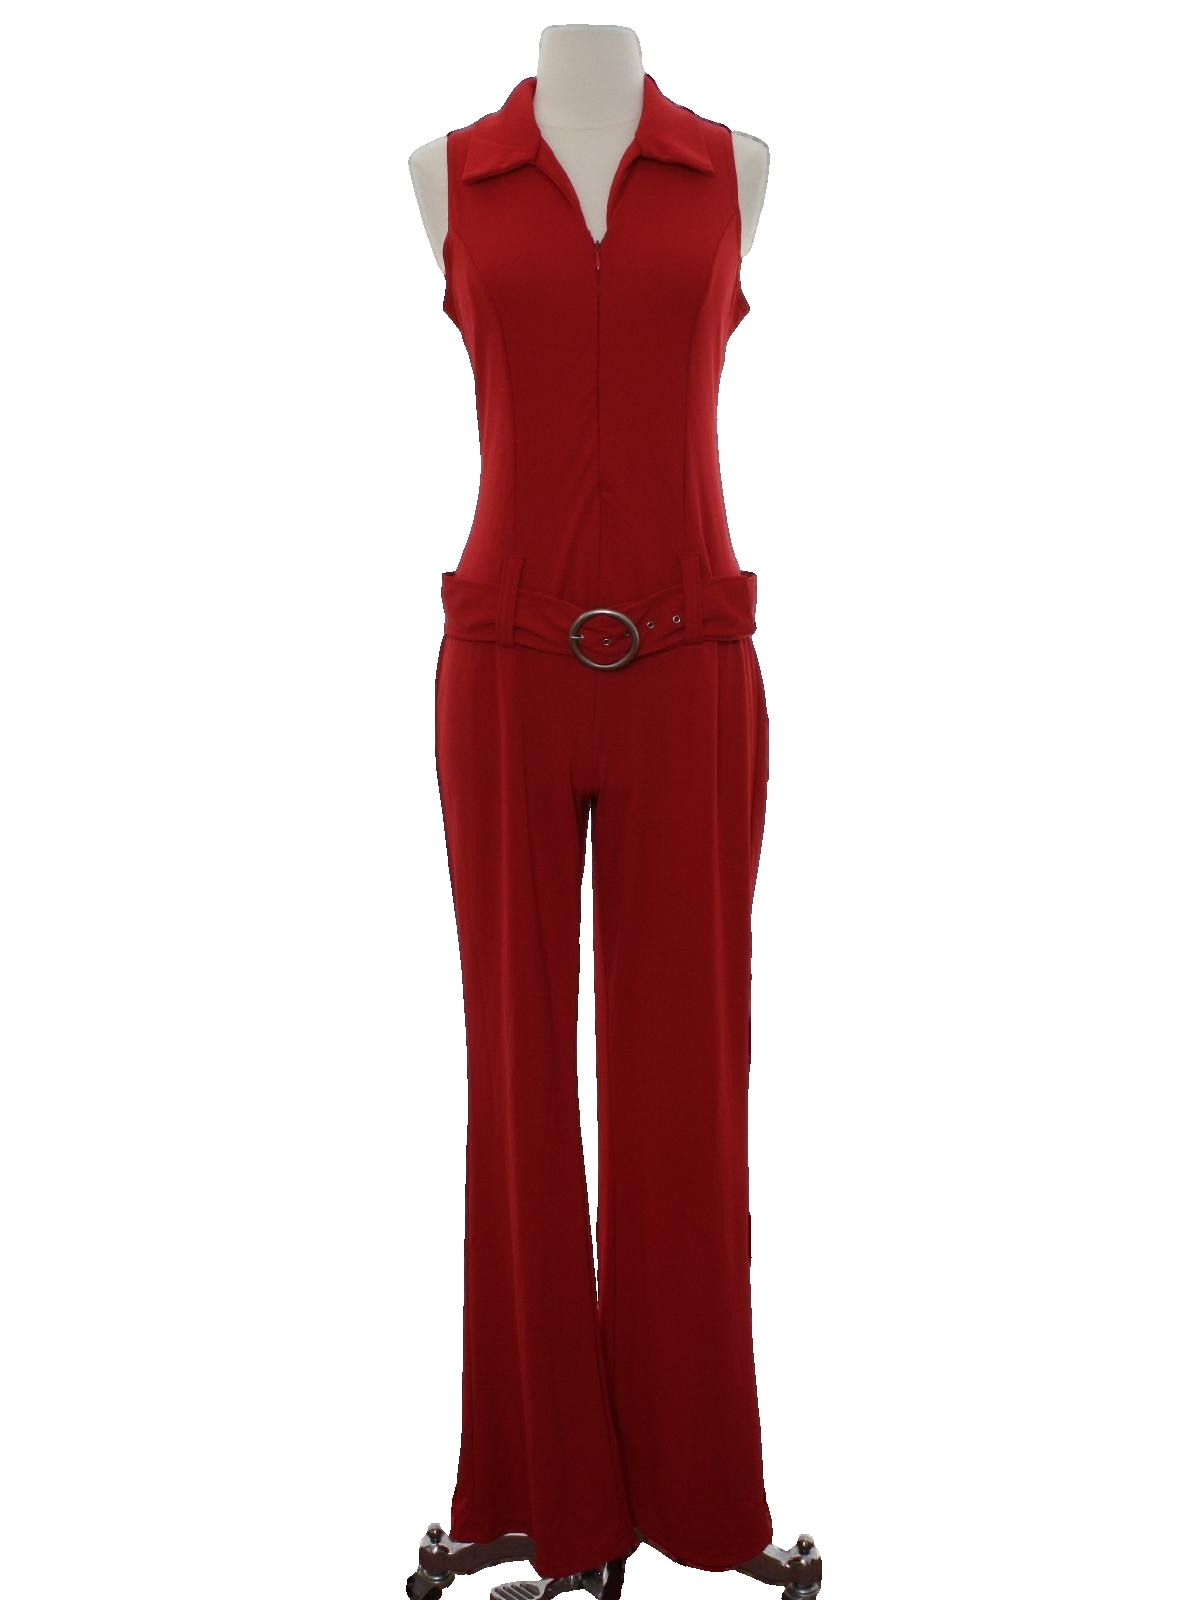 e6c17f71622 Nineties Vintage Suit  90s -Venus- Womens red background polyester ...